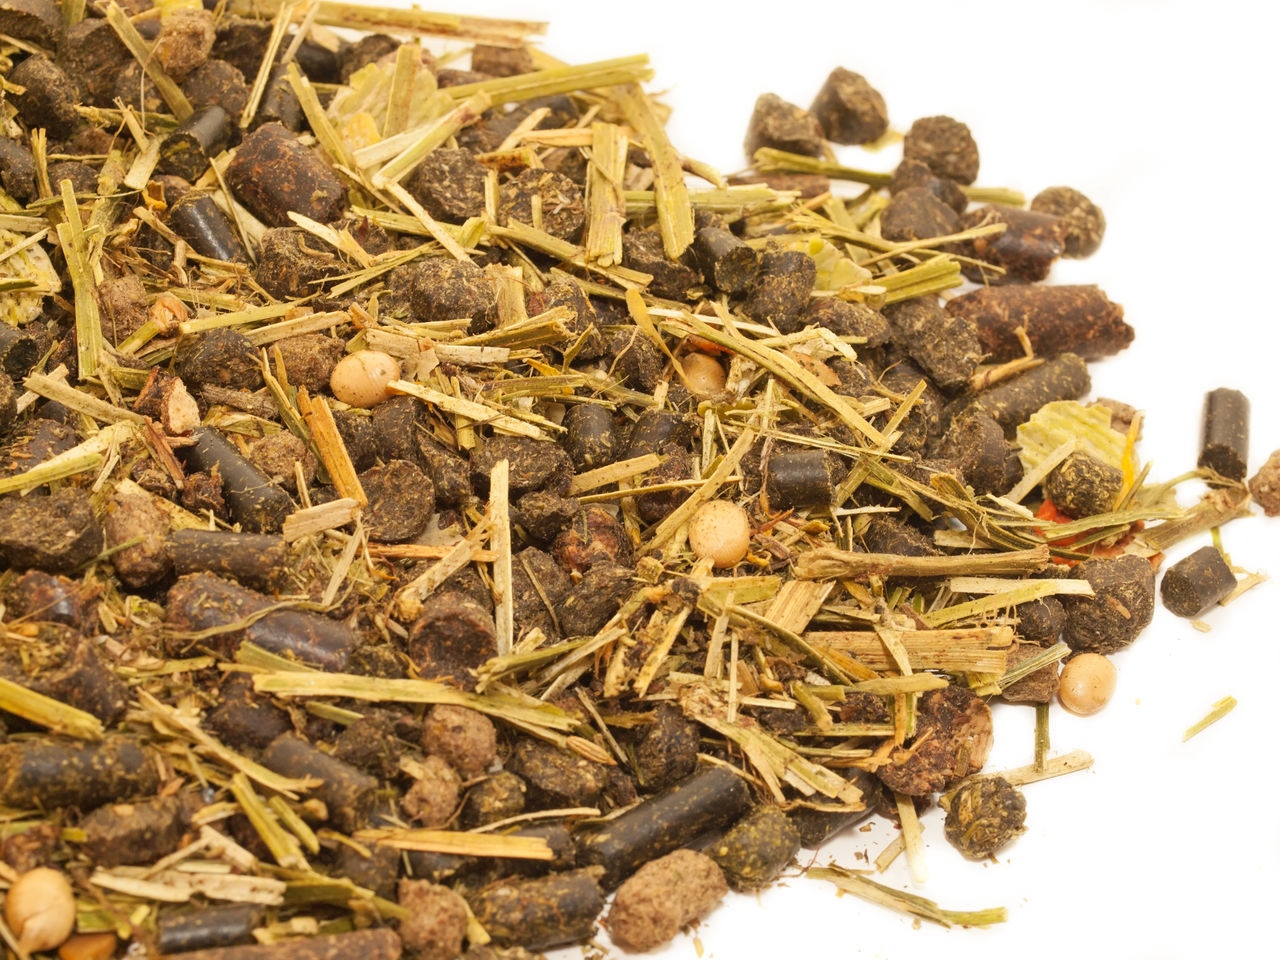 Close-up Day Food Freshness Healthy Eating Herbal Medicine Horse Food Muslie Nature No People White Background